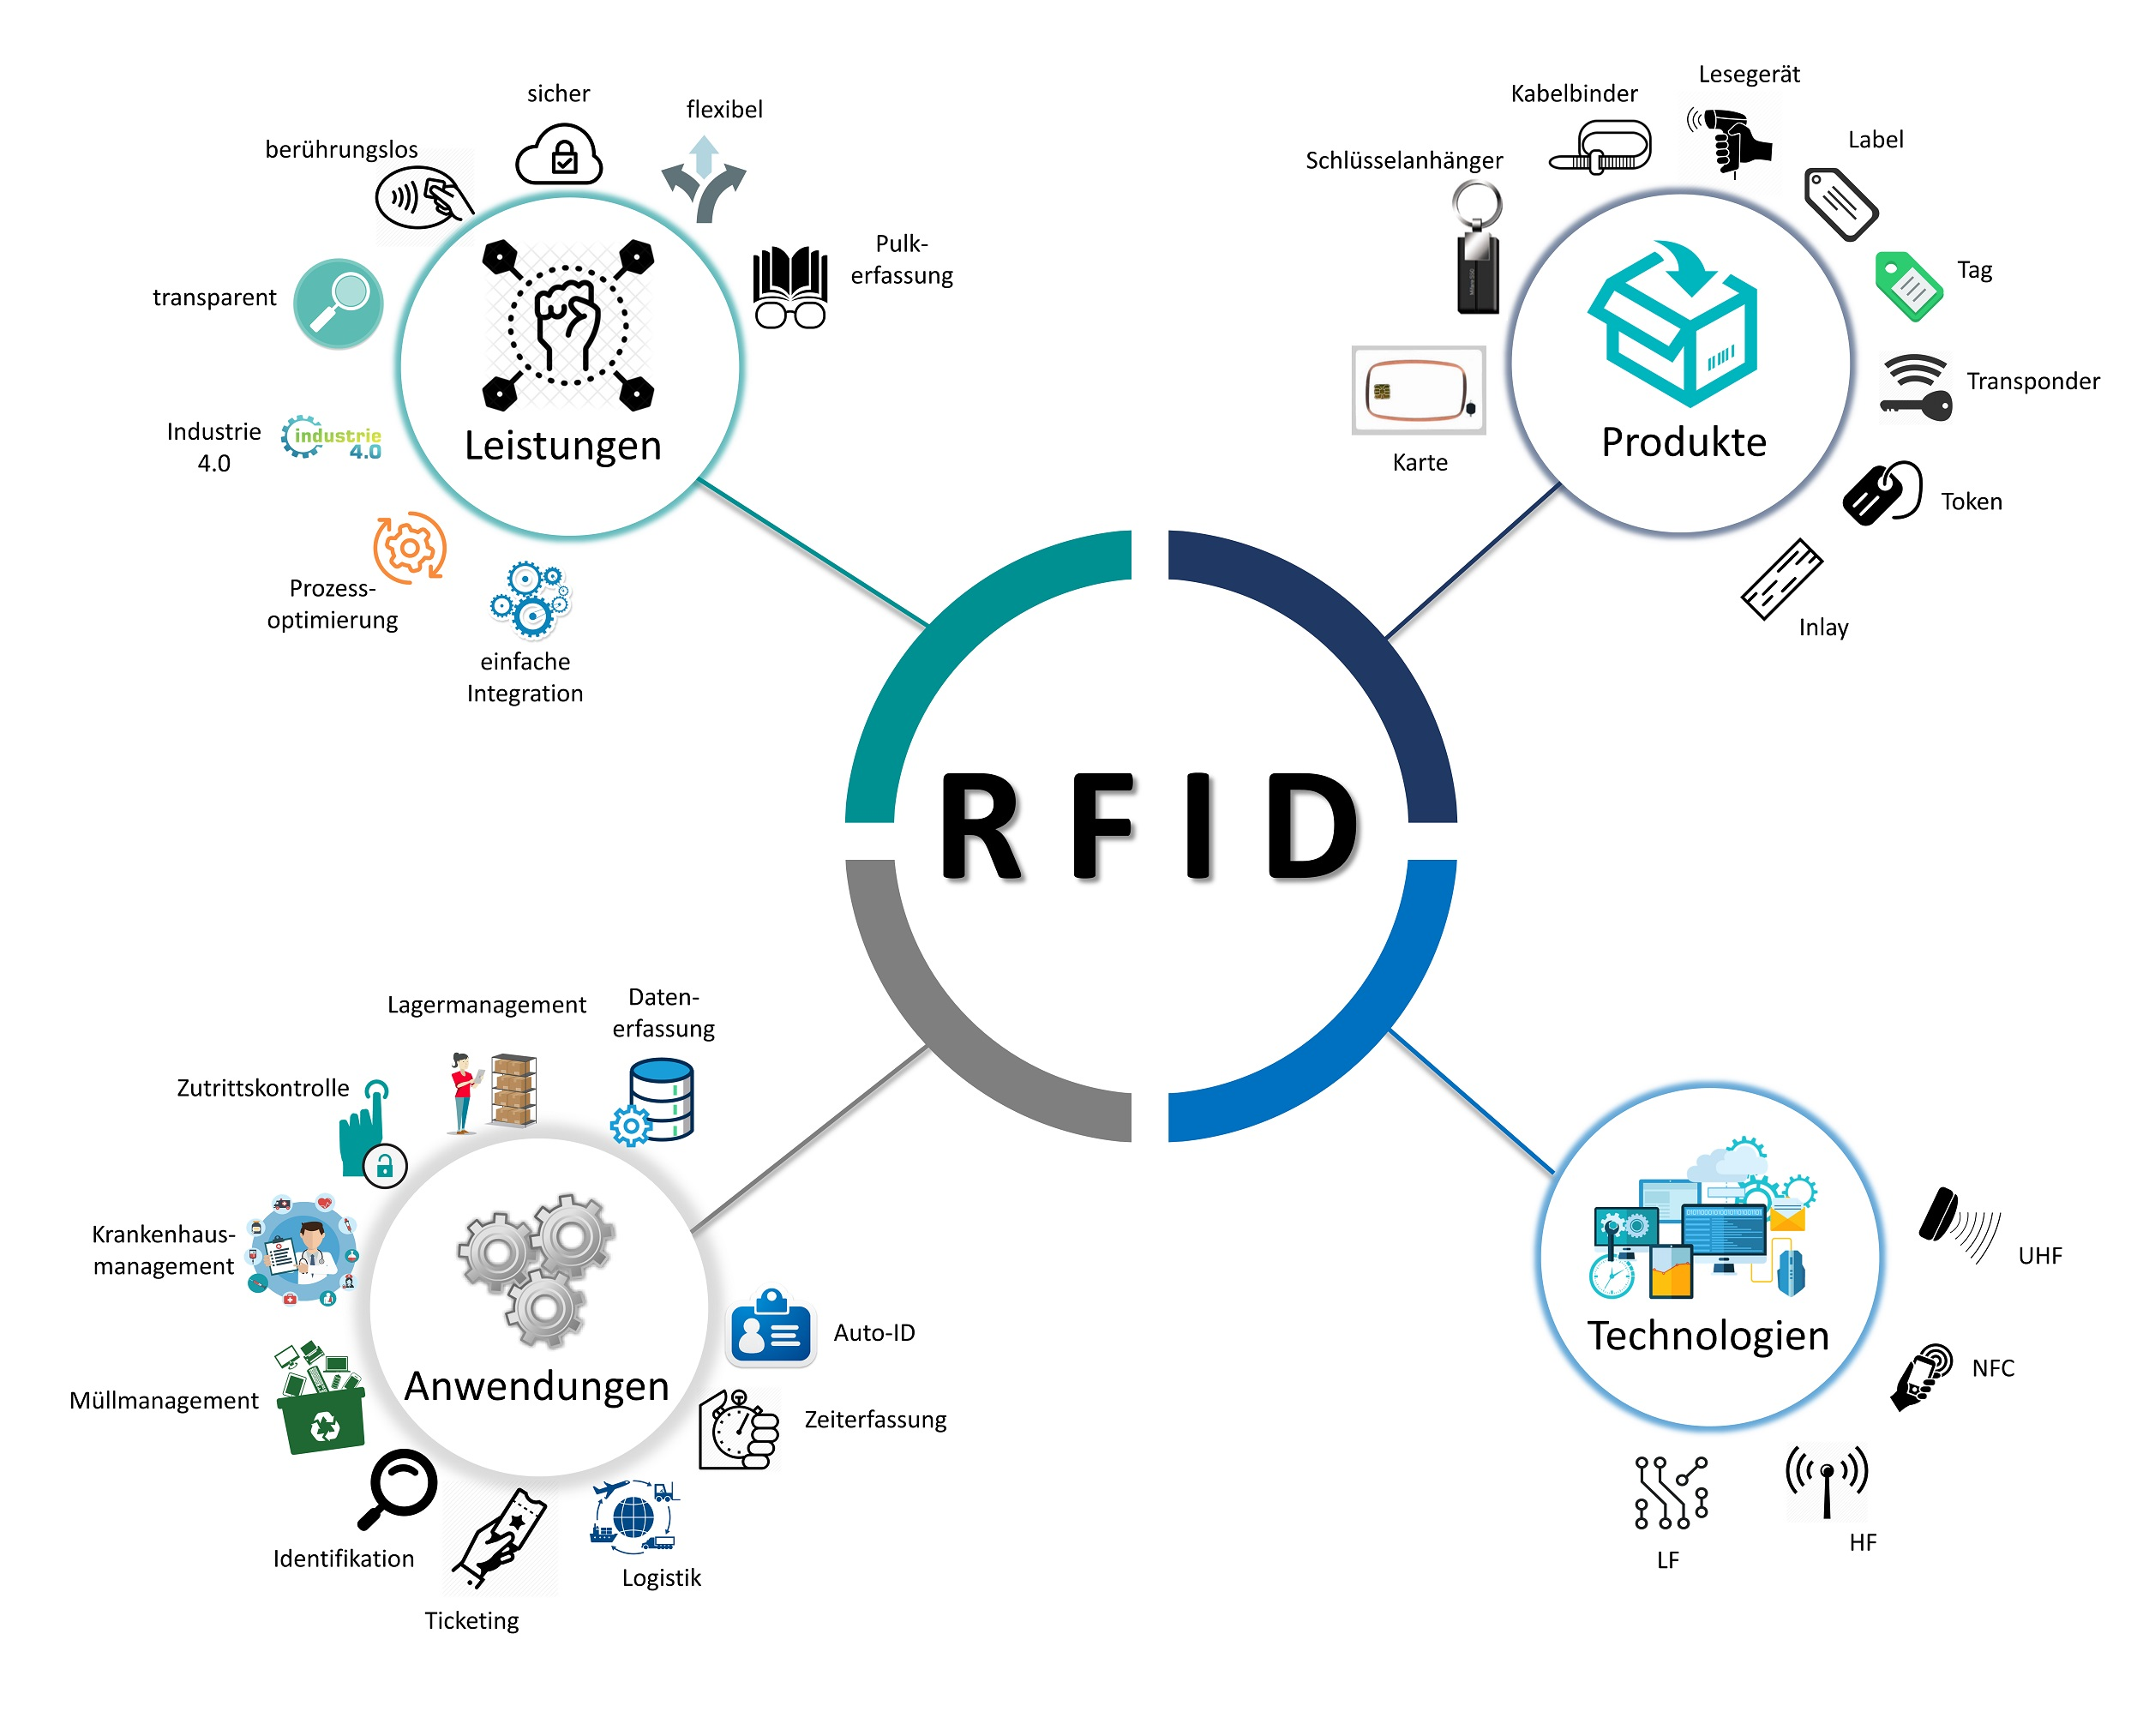 graphic mind map die Welt der RFID